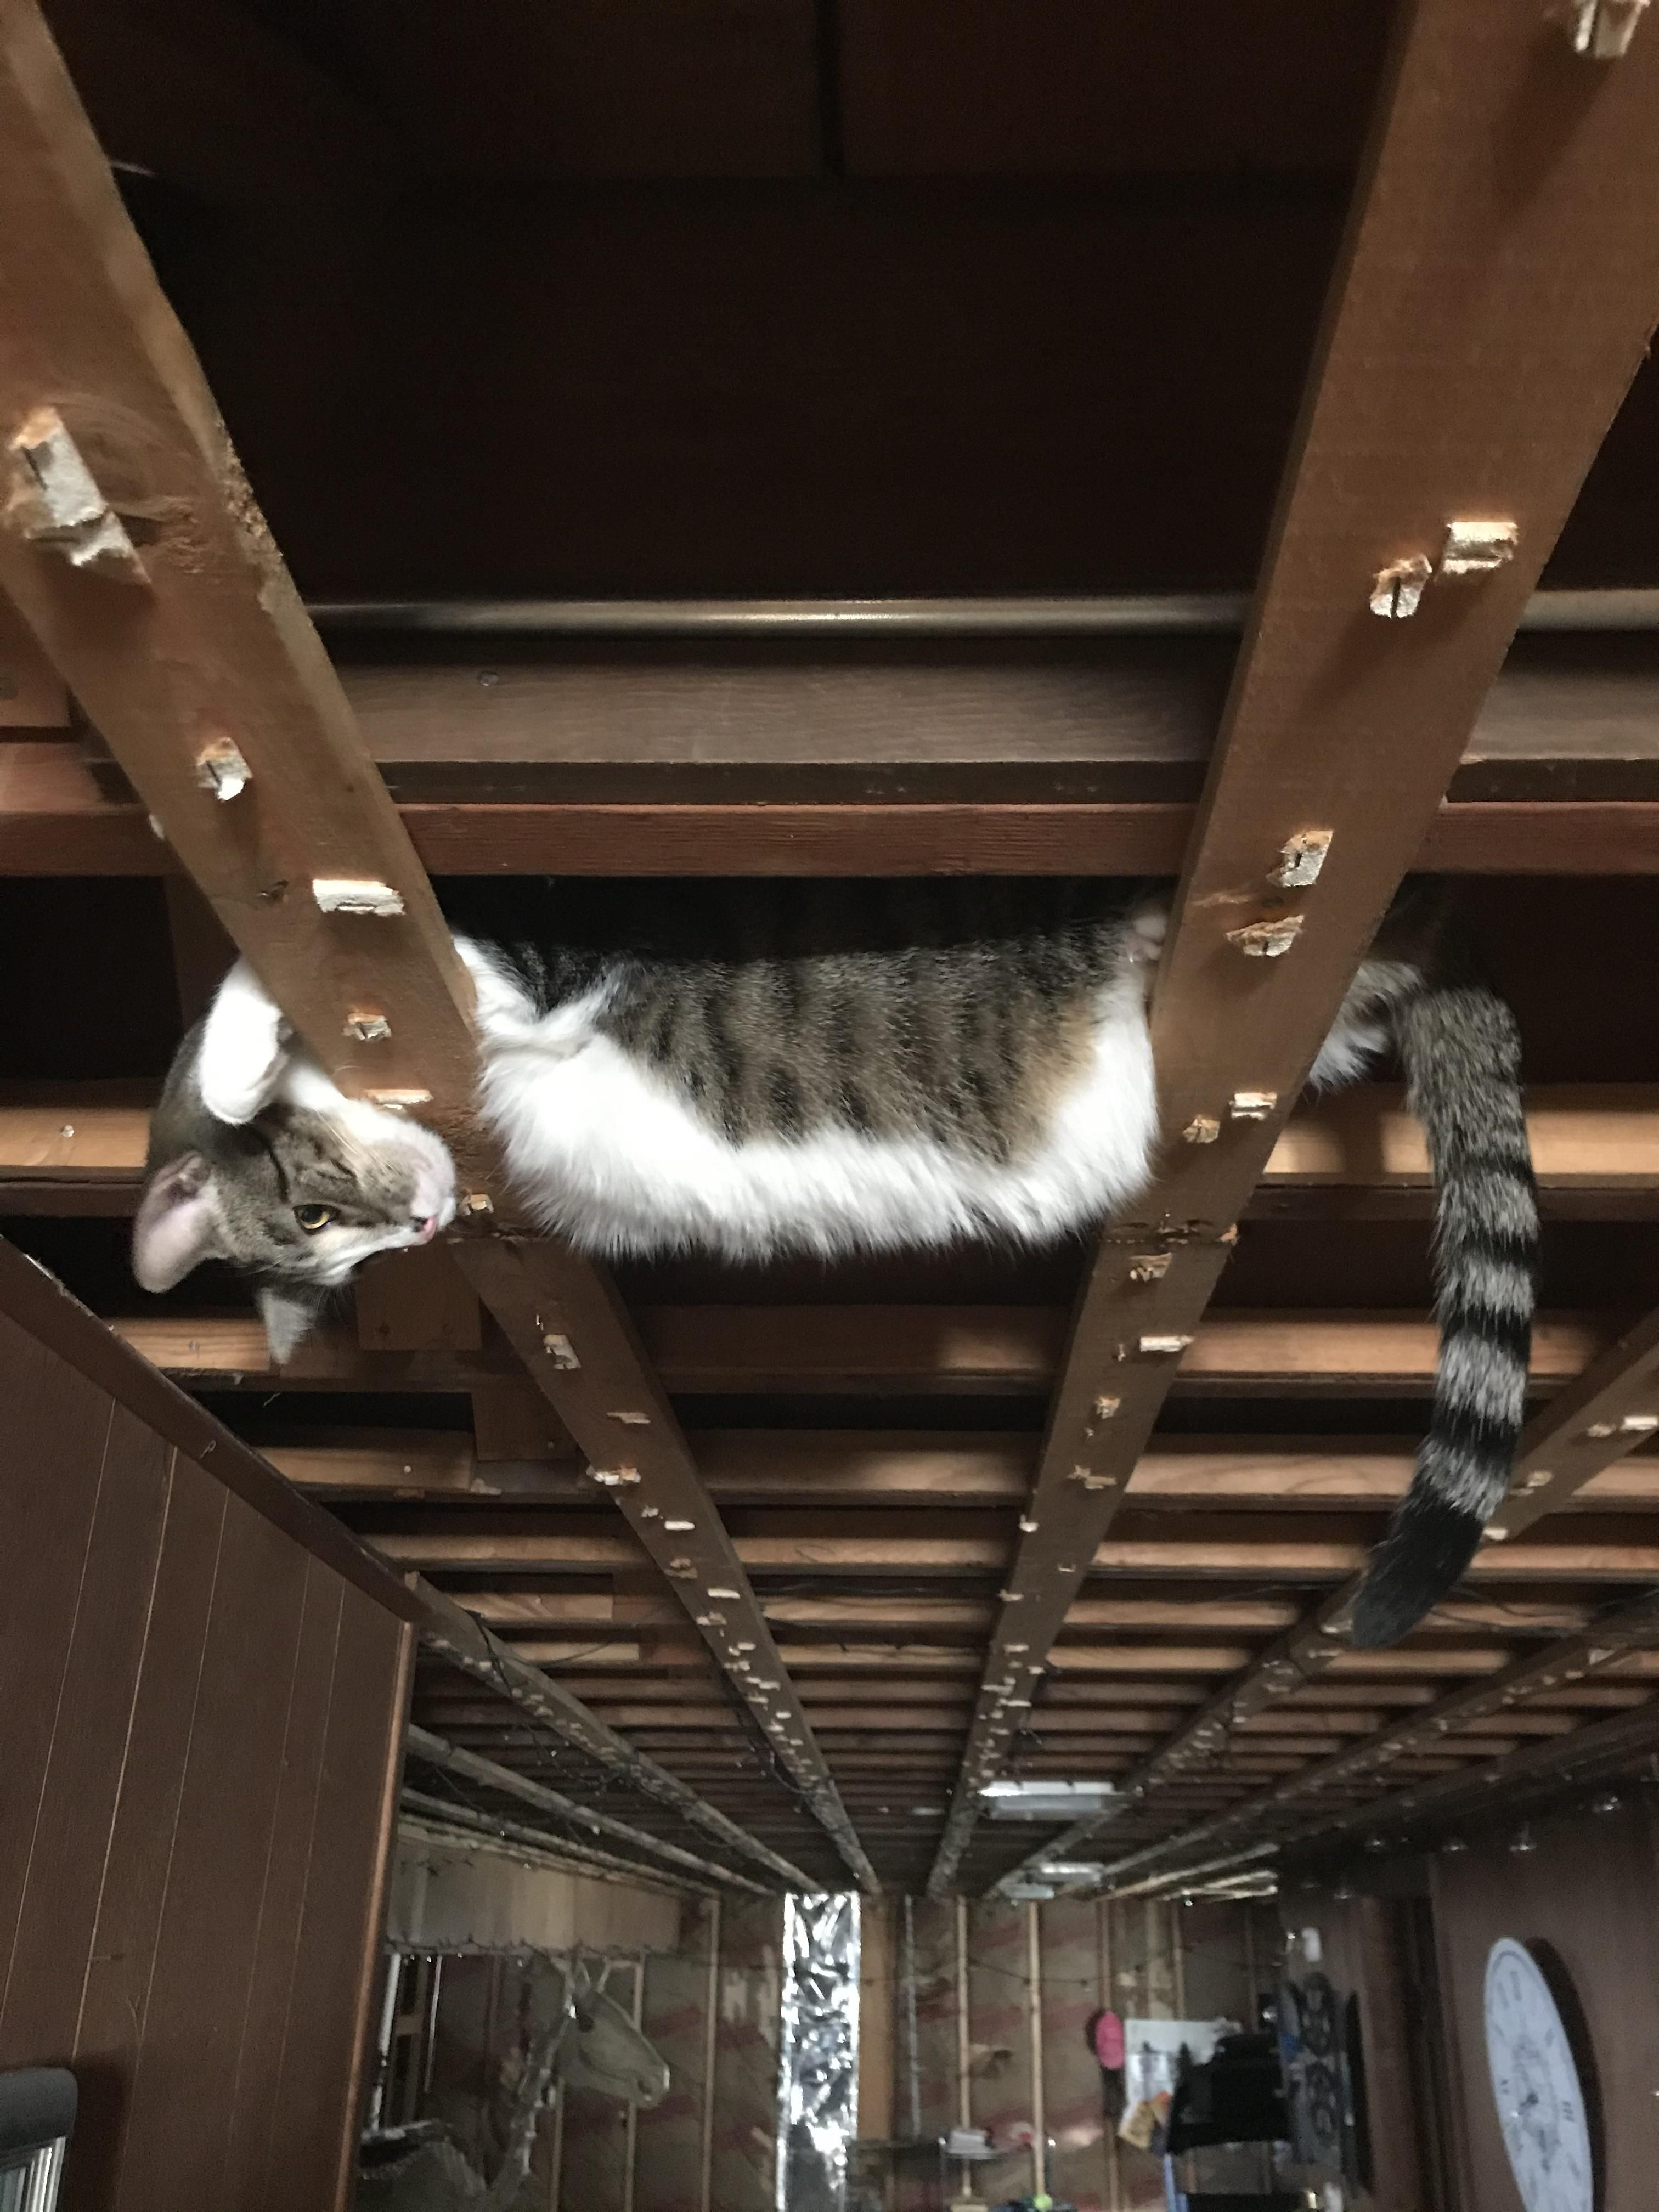 I'm remodeling my basement and all the ceiling tiles were just removed. I found my cat like this.